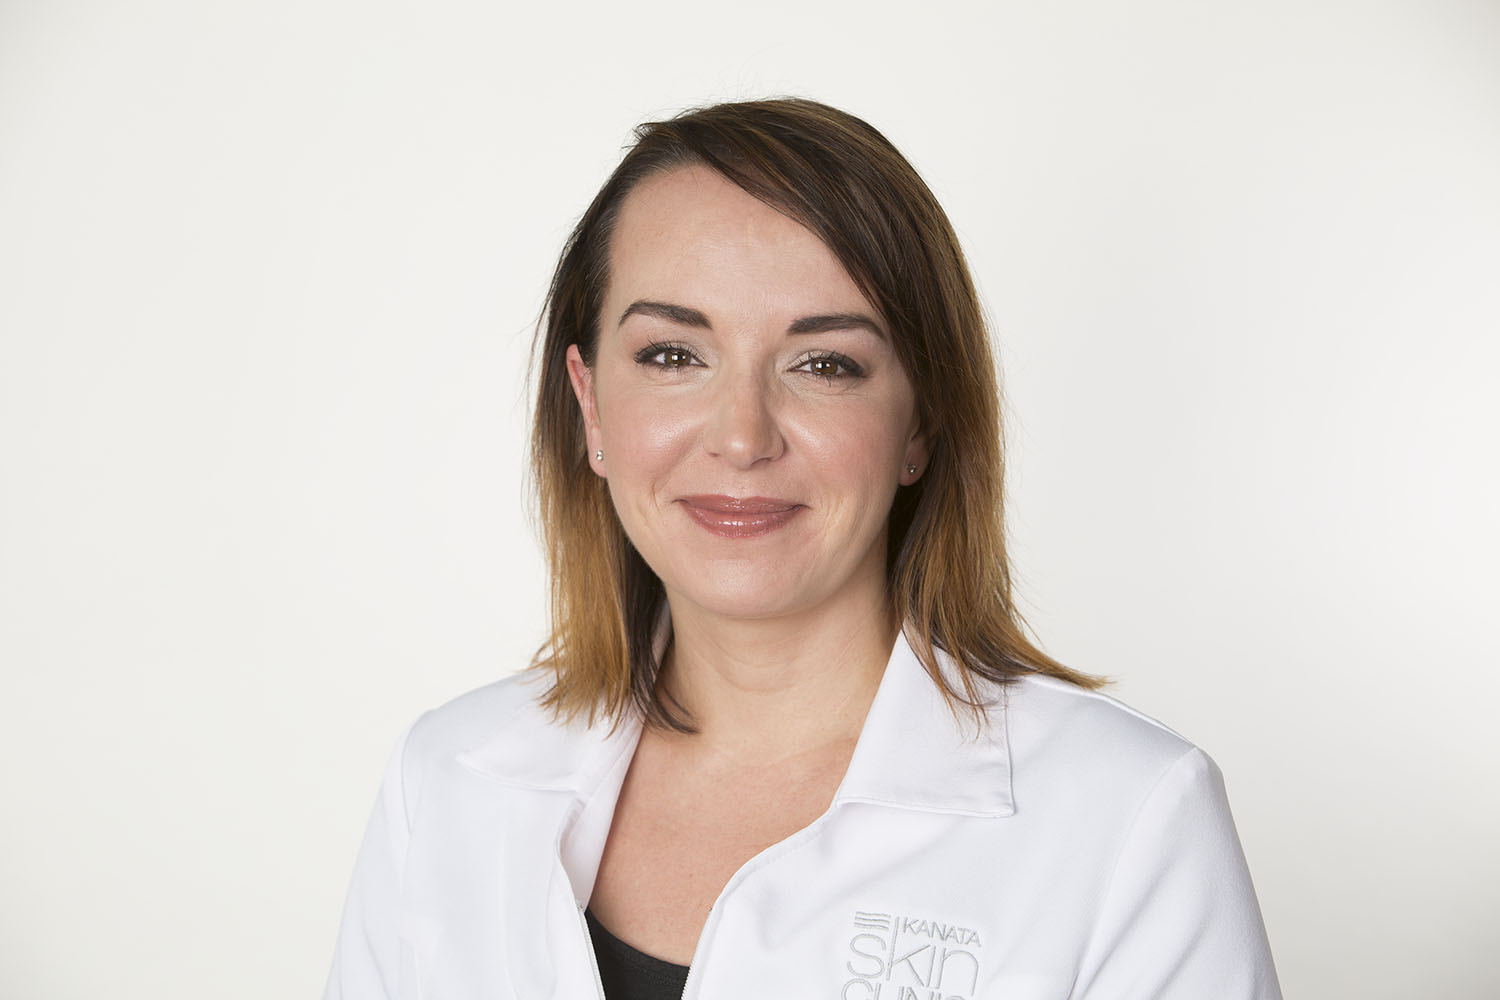 Krista Latreille, Medical Aesthetician, RMT